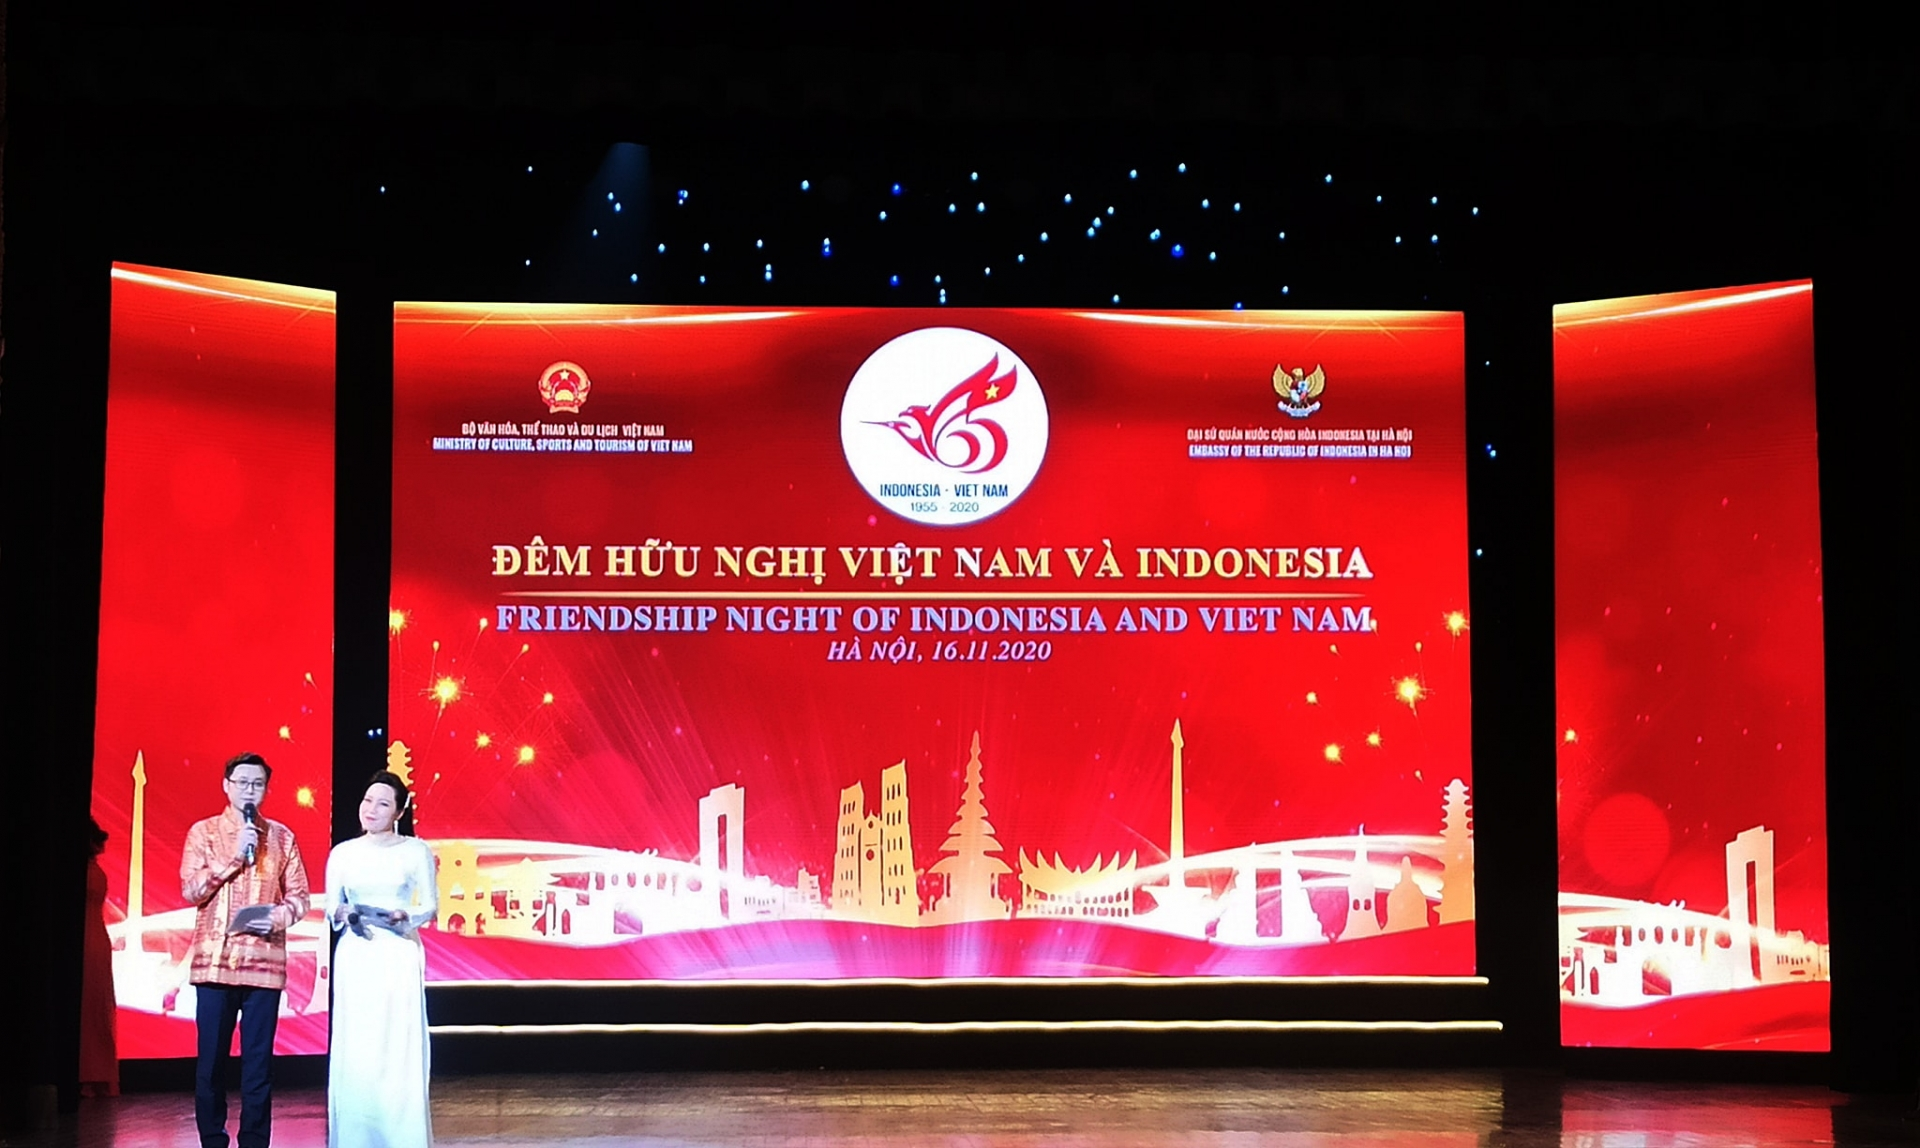 Friendship night of Vietnam and Indonesia marked 65 years of ties